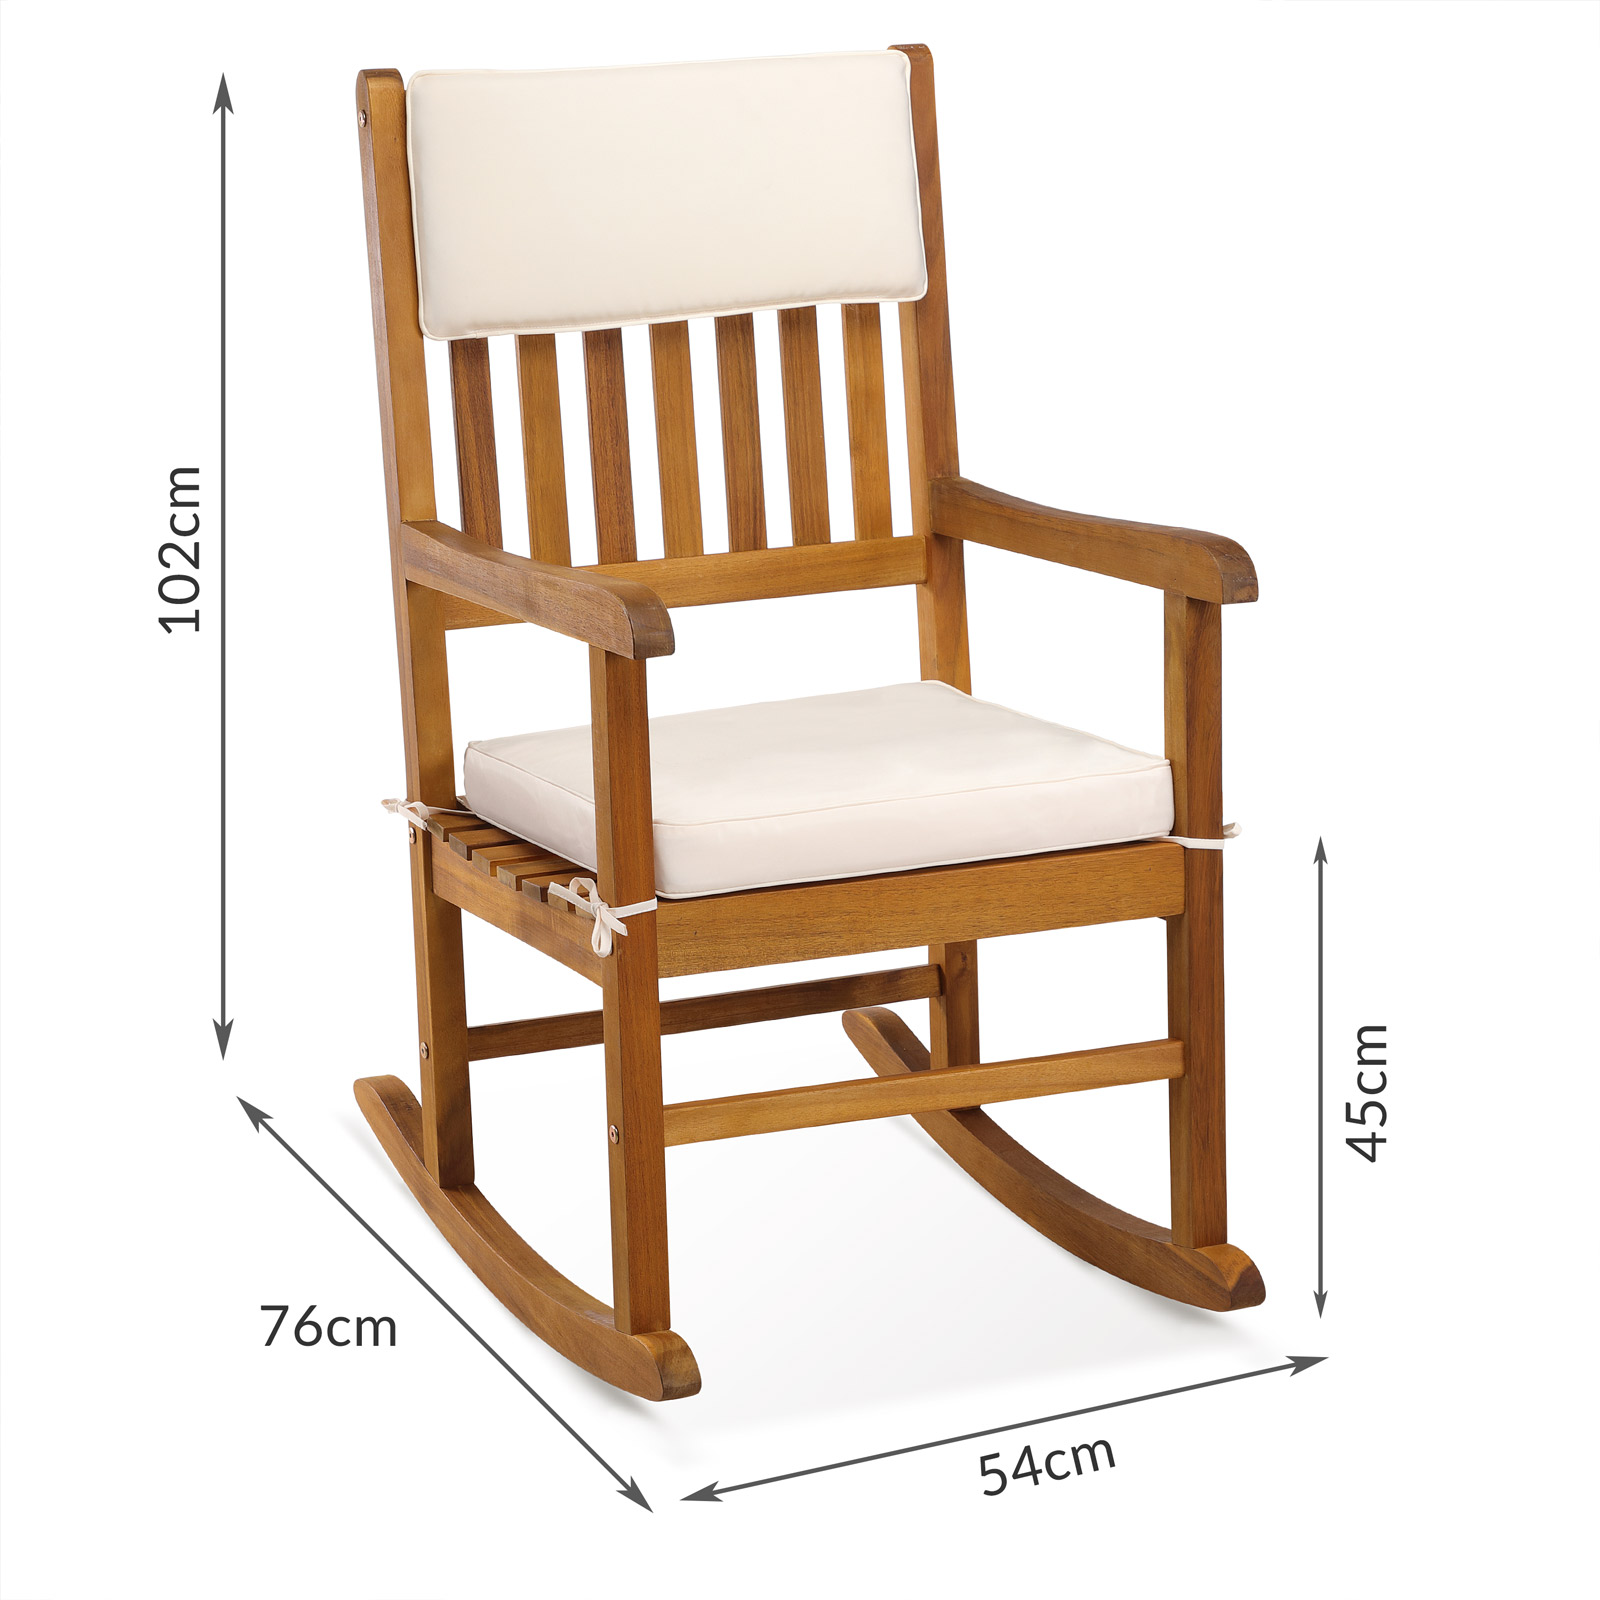 Patio rocking chair wooden reading chair balcony garden for Terrace chairs